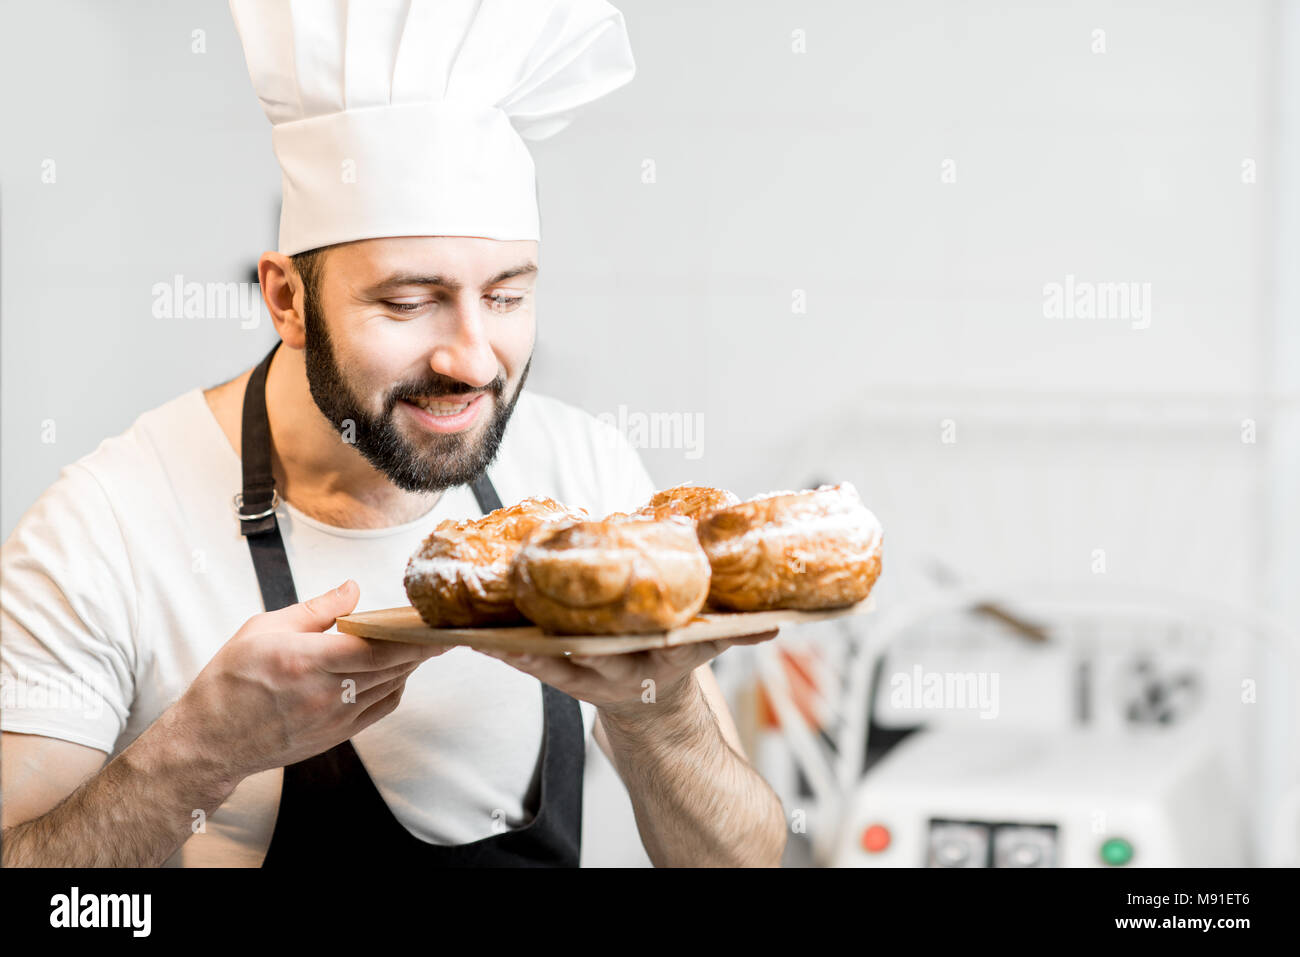 Confectioner with sweet pastry indoors - Stock Image